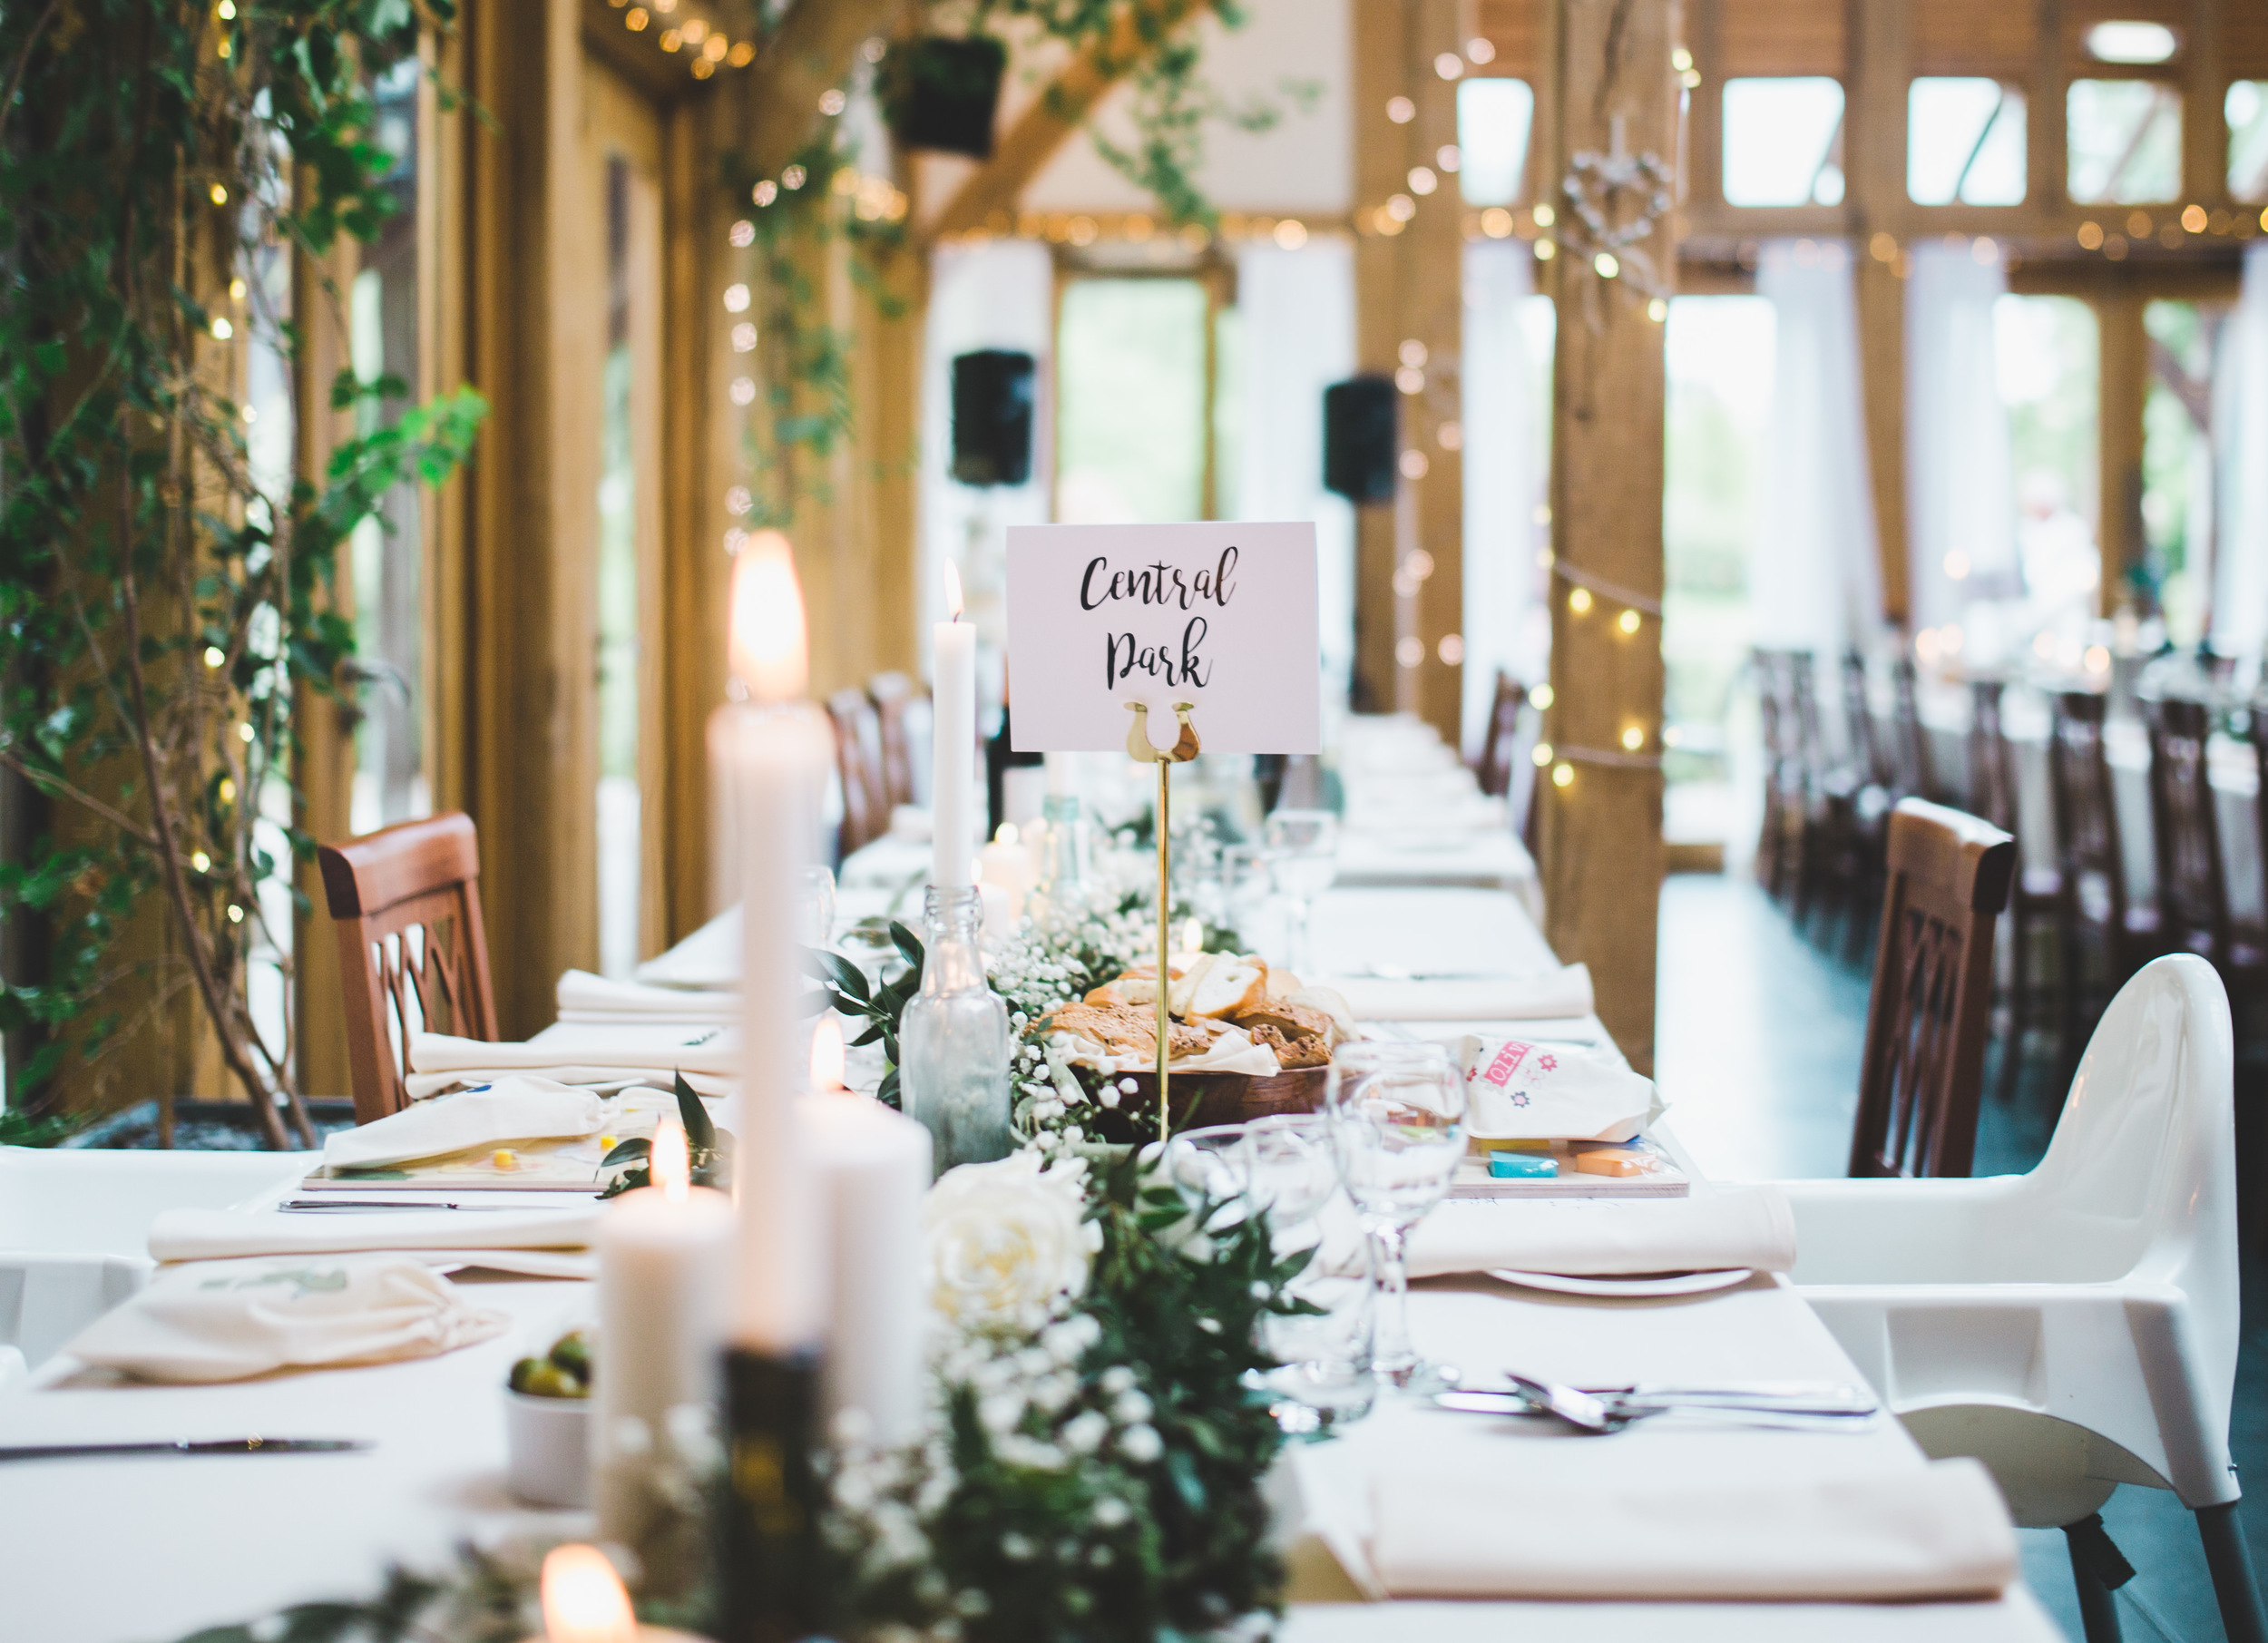 Oaktree of Peover Cheshire wedding venue - table settings